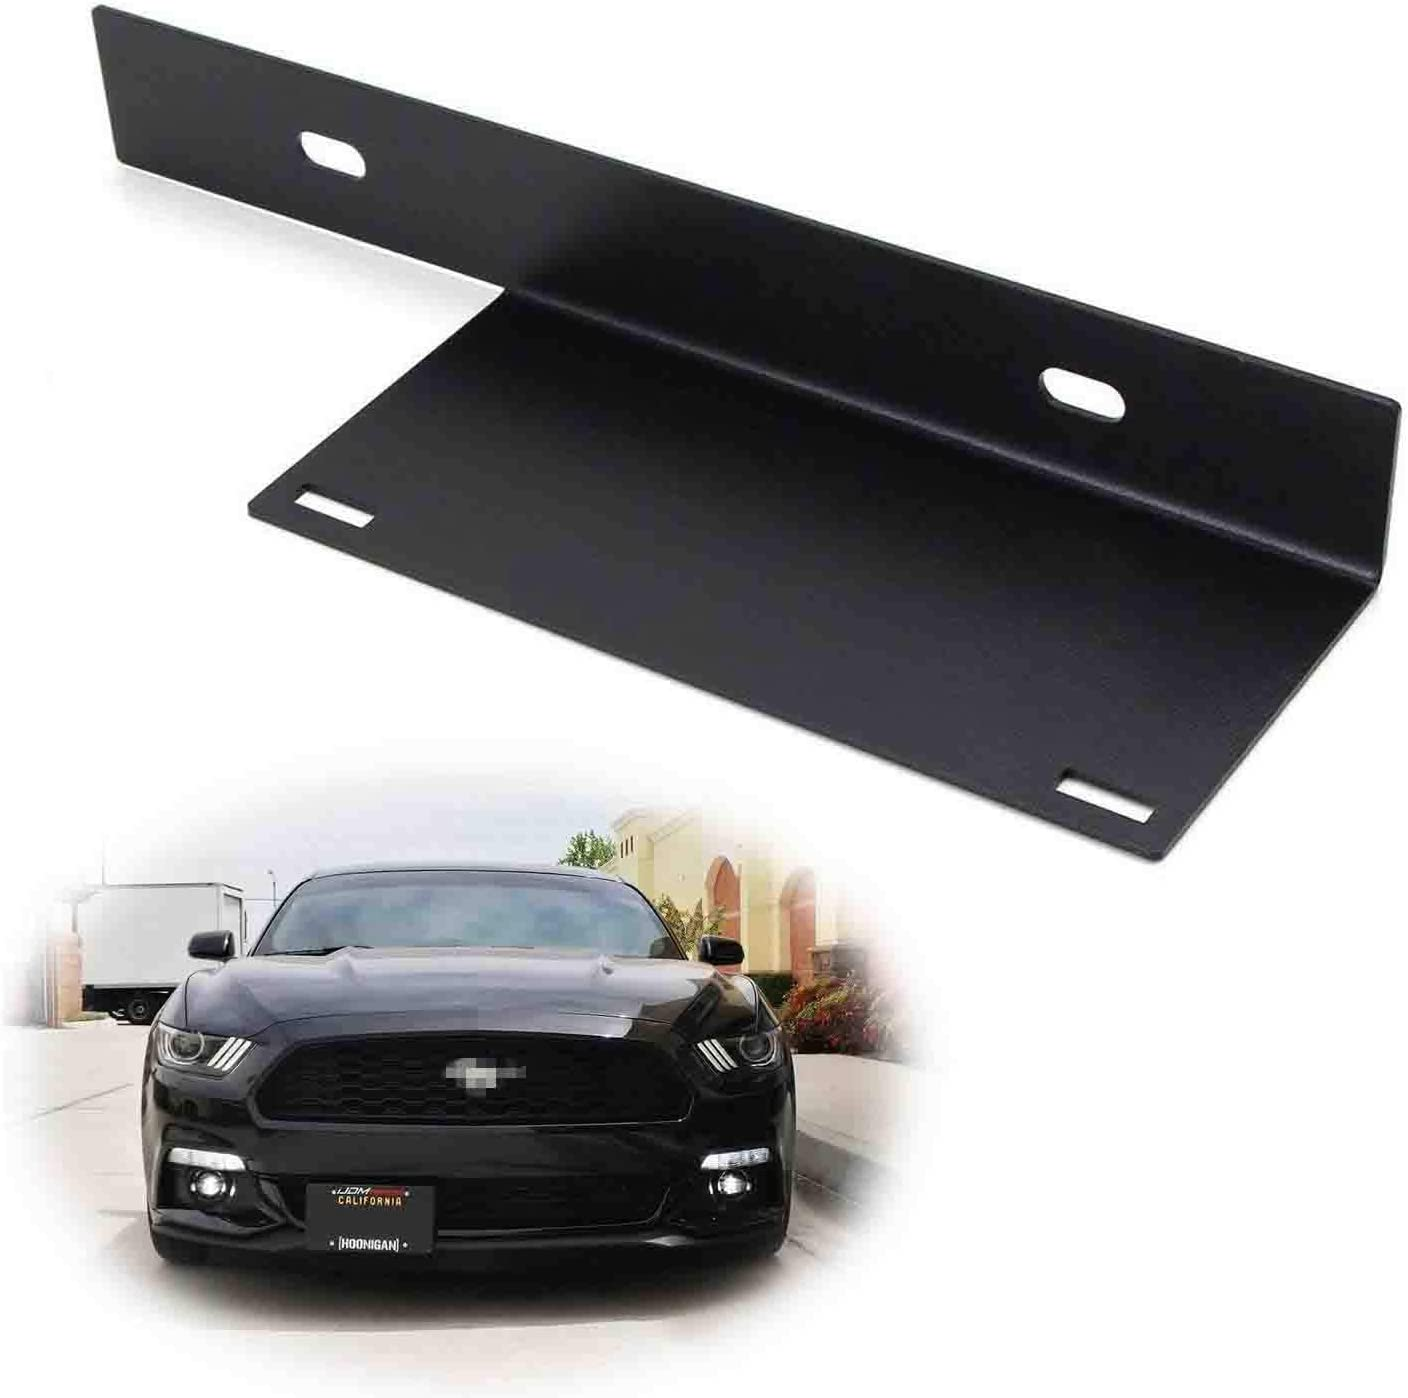 Bumper Filler For 67-68 Ford Mustang No drill Front